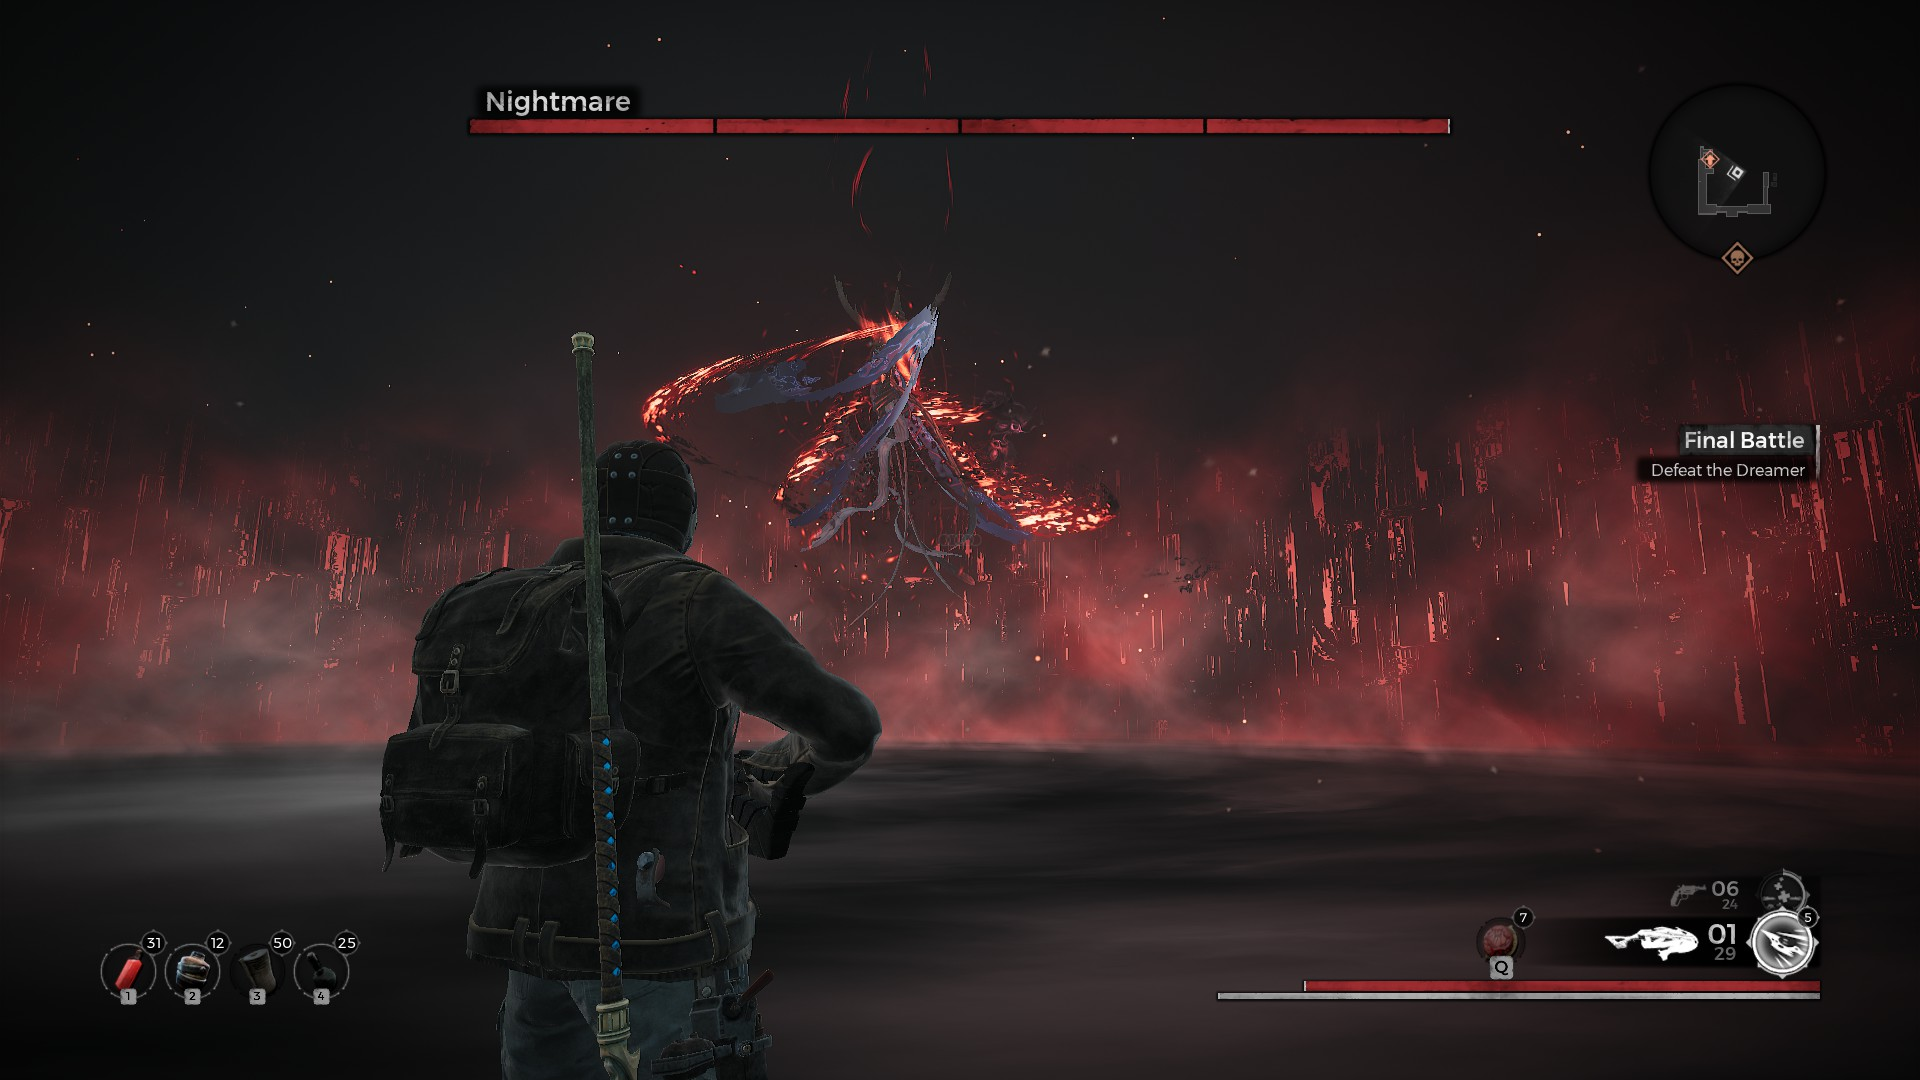 Remnant: From the Ashes - How to Fight All Bosses in Game + Achievements and Characters Information - -Dreamer/Nightmare strategy - A79E17F